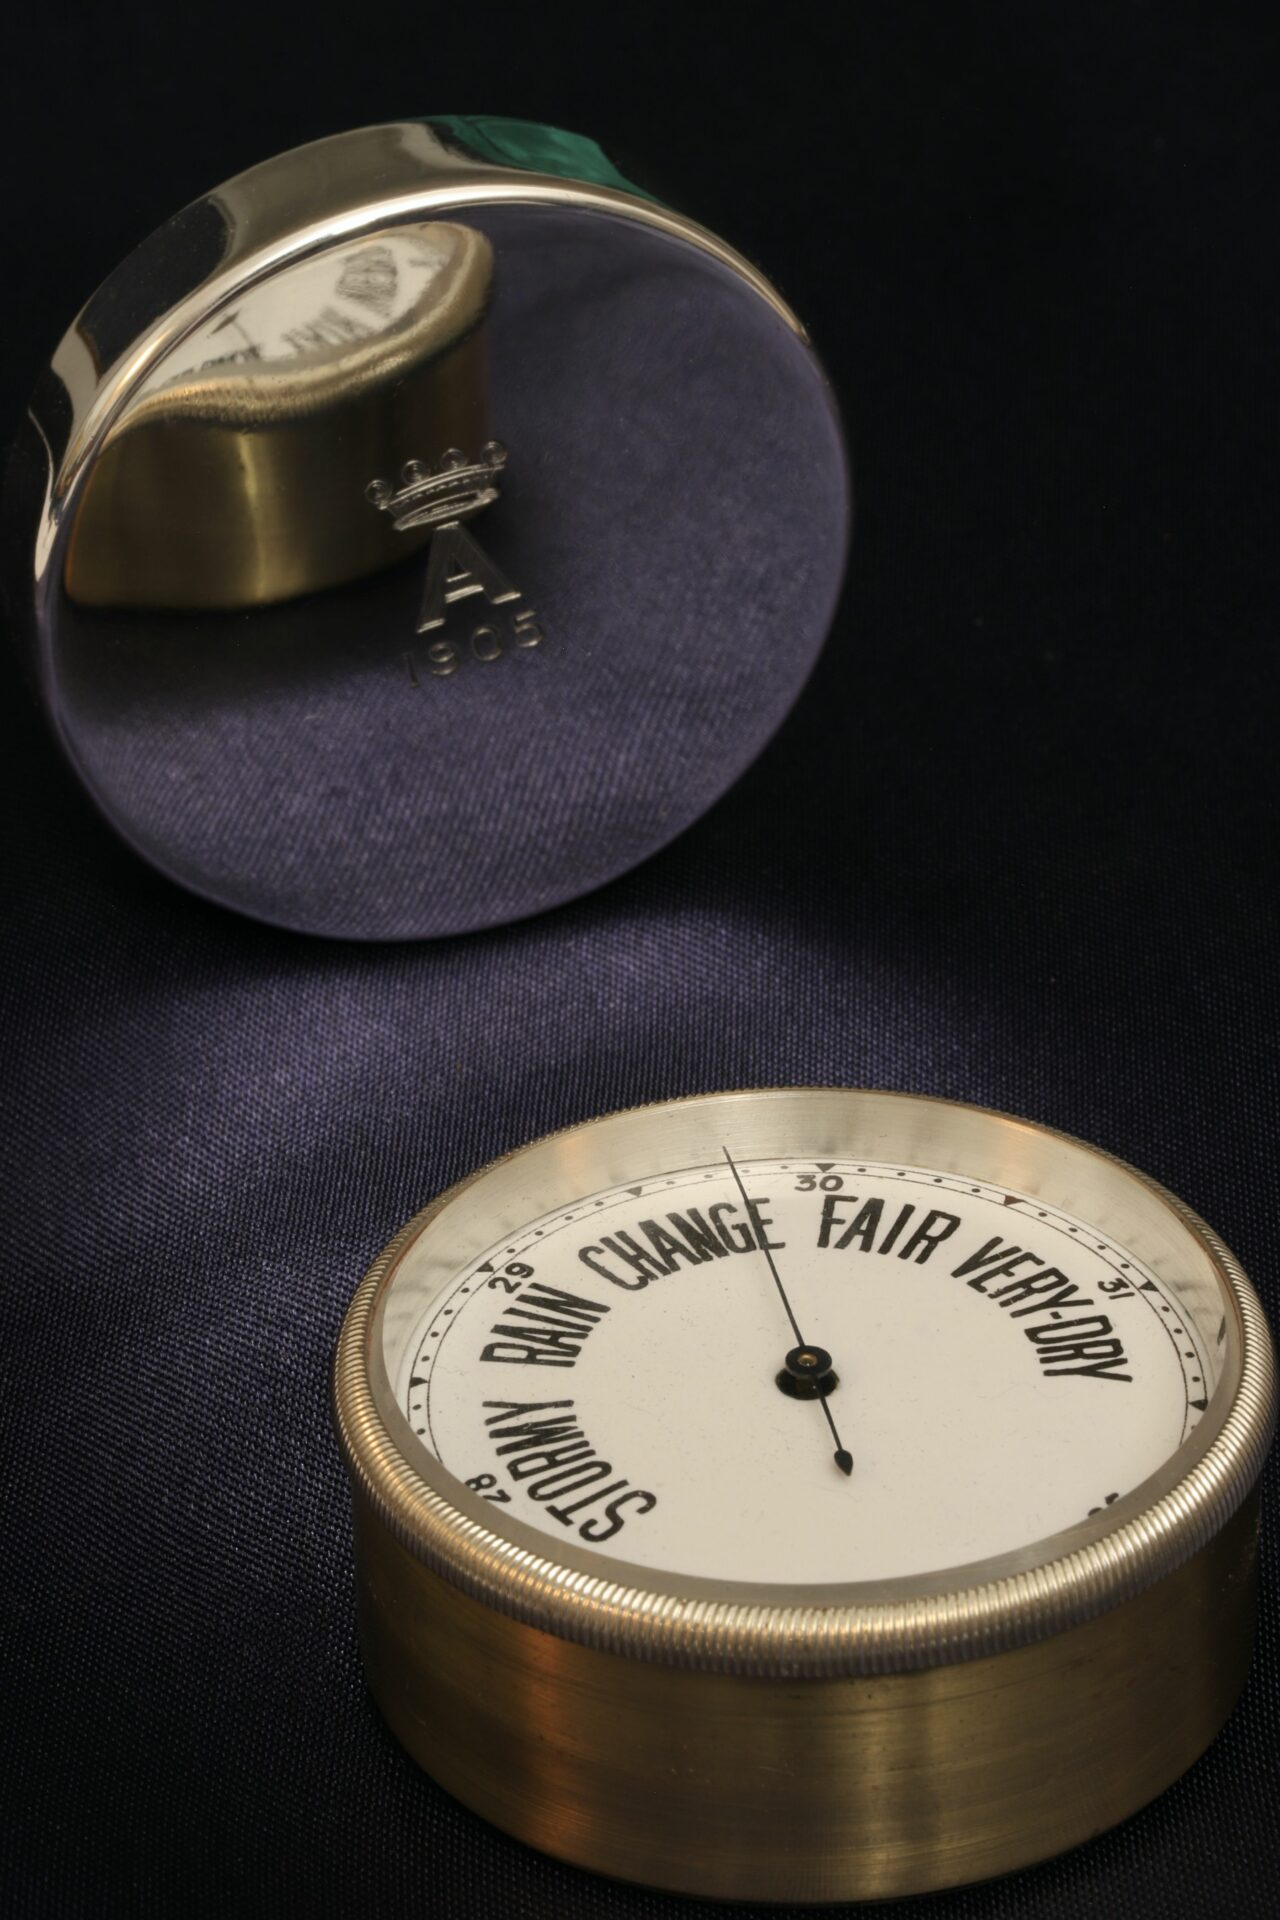 Image of lid showing monogram and barometer dial of Silver Travel Barometer by Gourdel Vales c1900